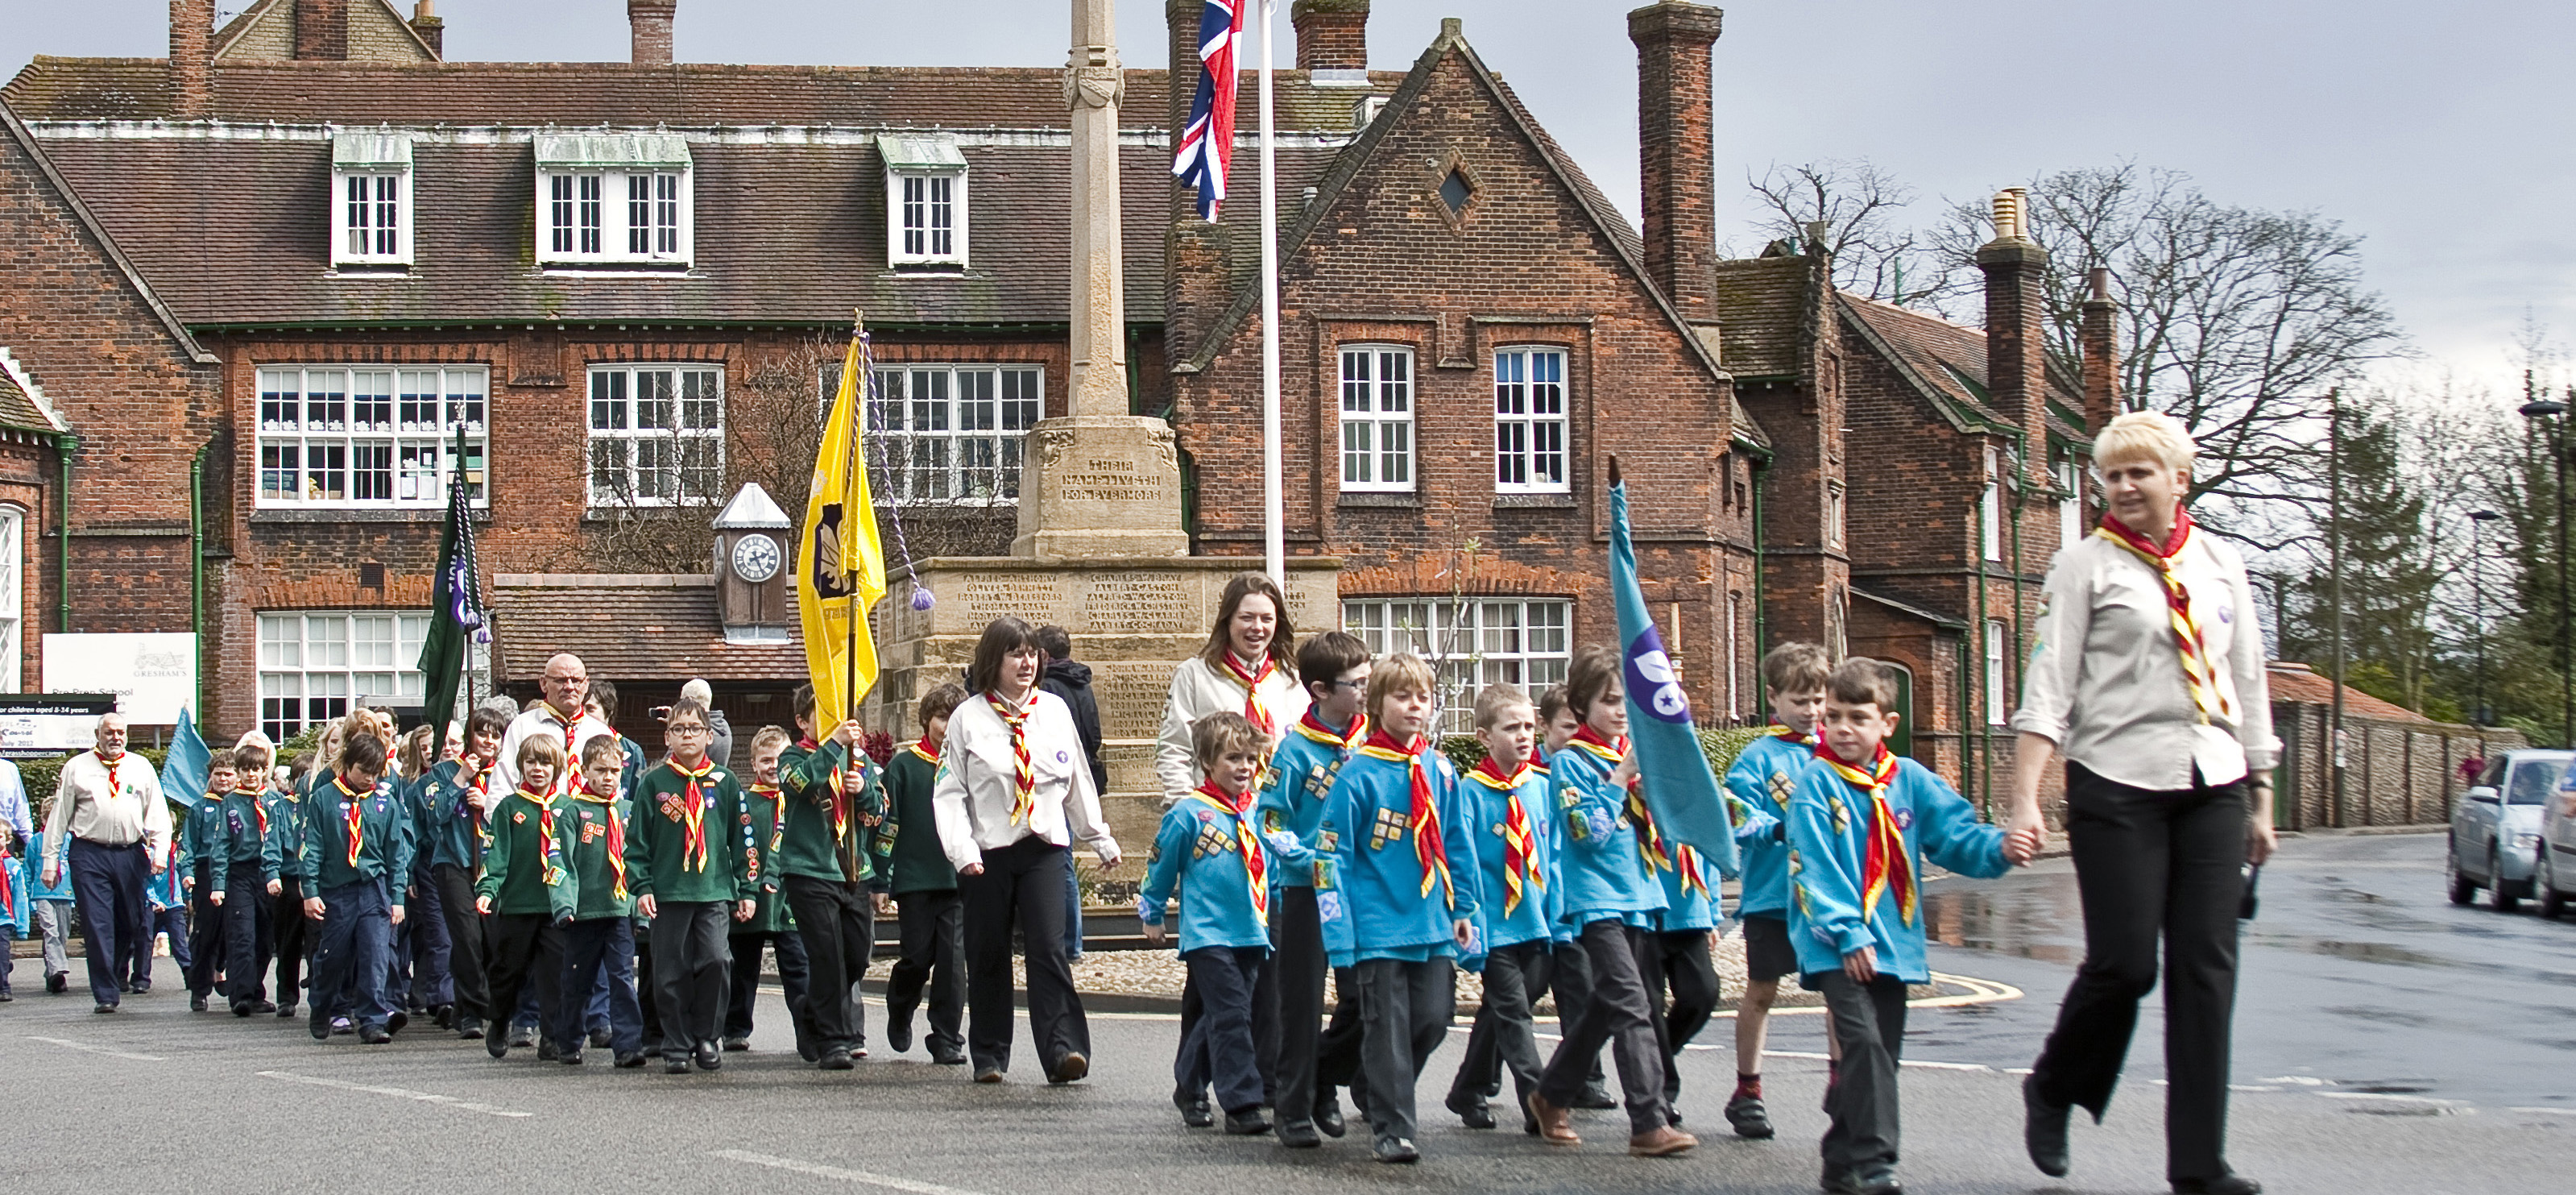 Remembrance Day Parade in Holt